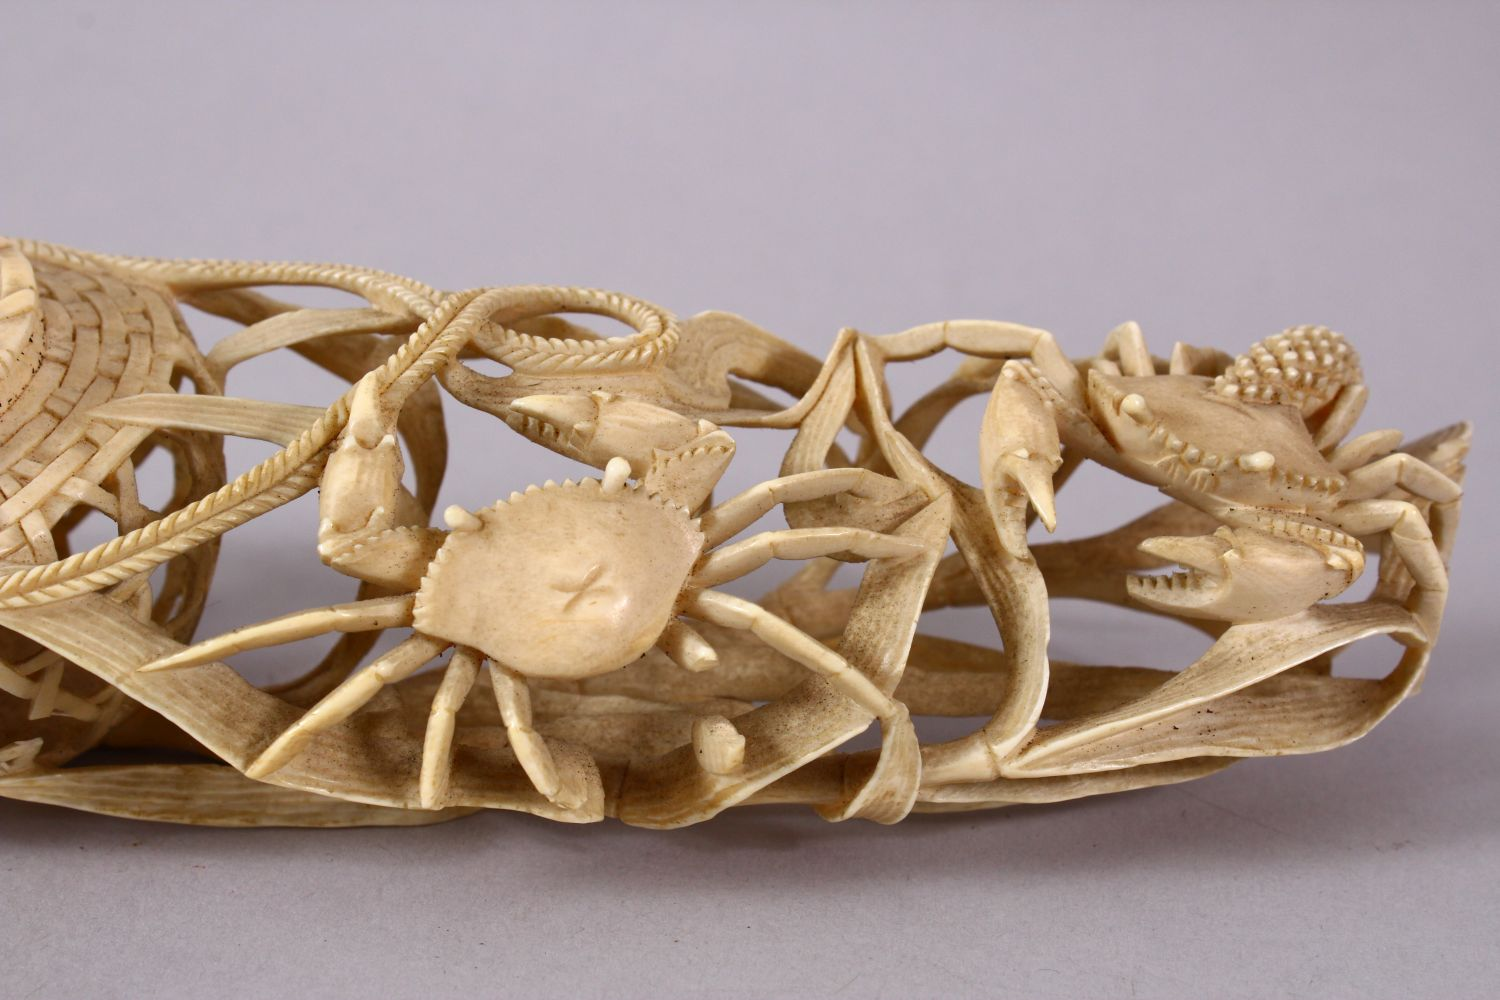 A JAPANESE MEIJI PERIOD CARVED IVORY CRAB GROUP OKIMONO - depicting a basket of crabs with three - Image 5 of 11